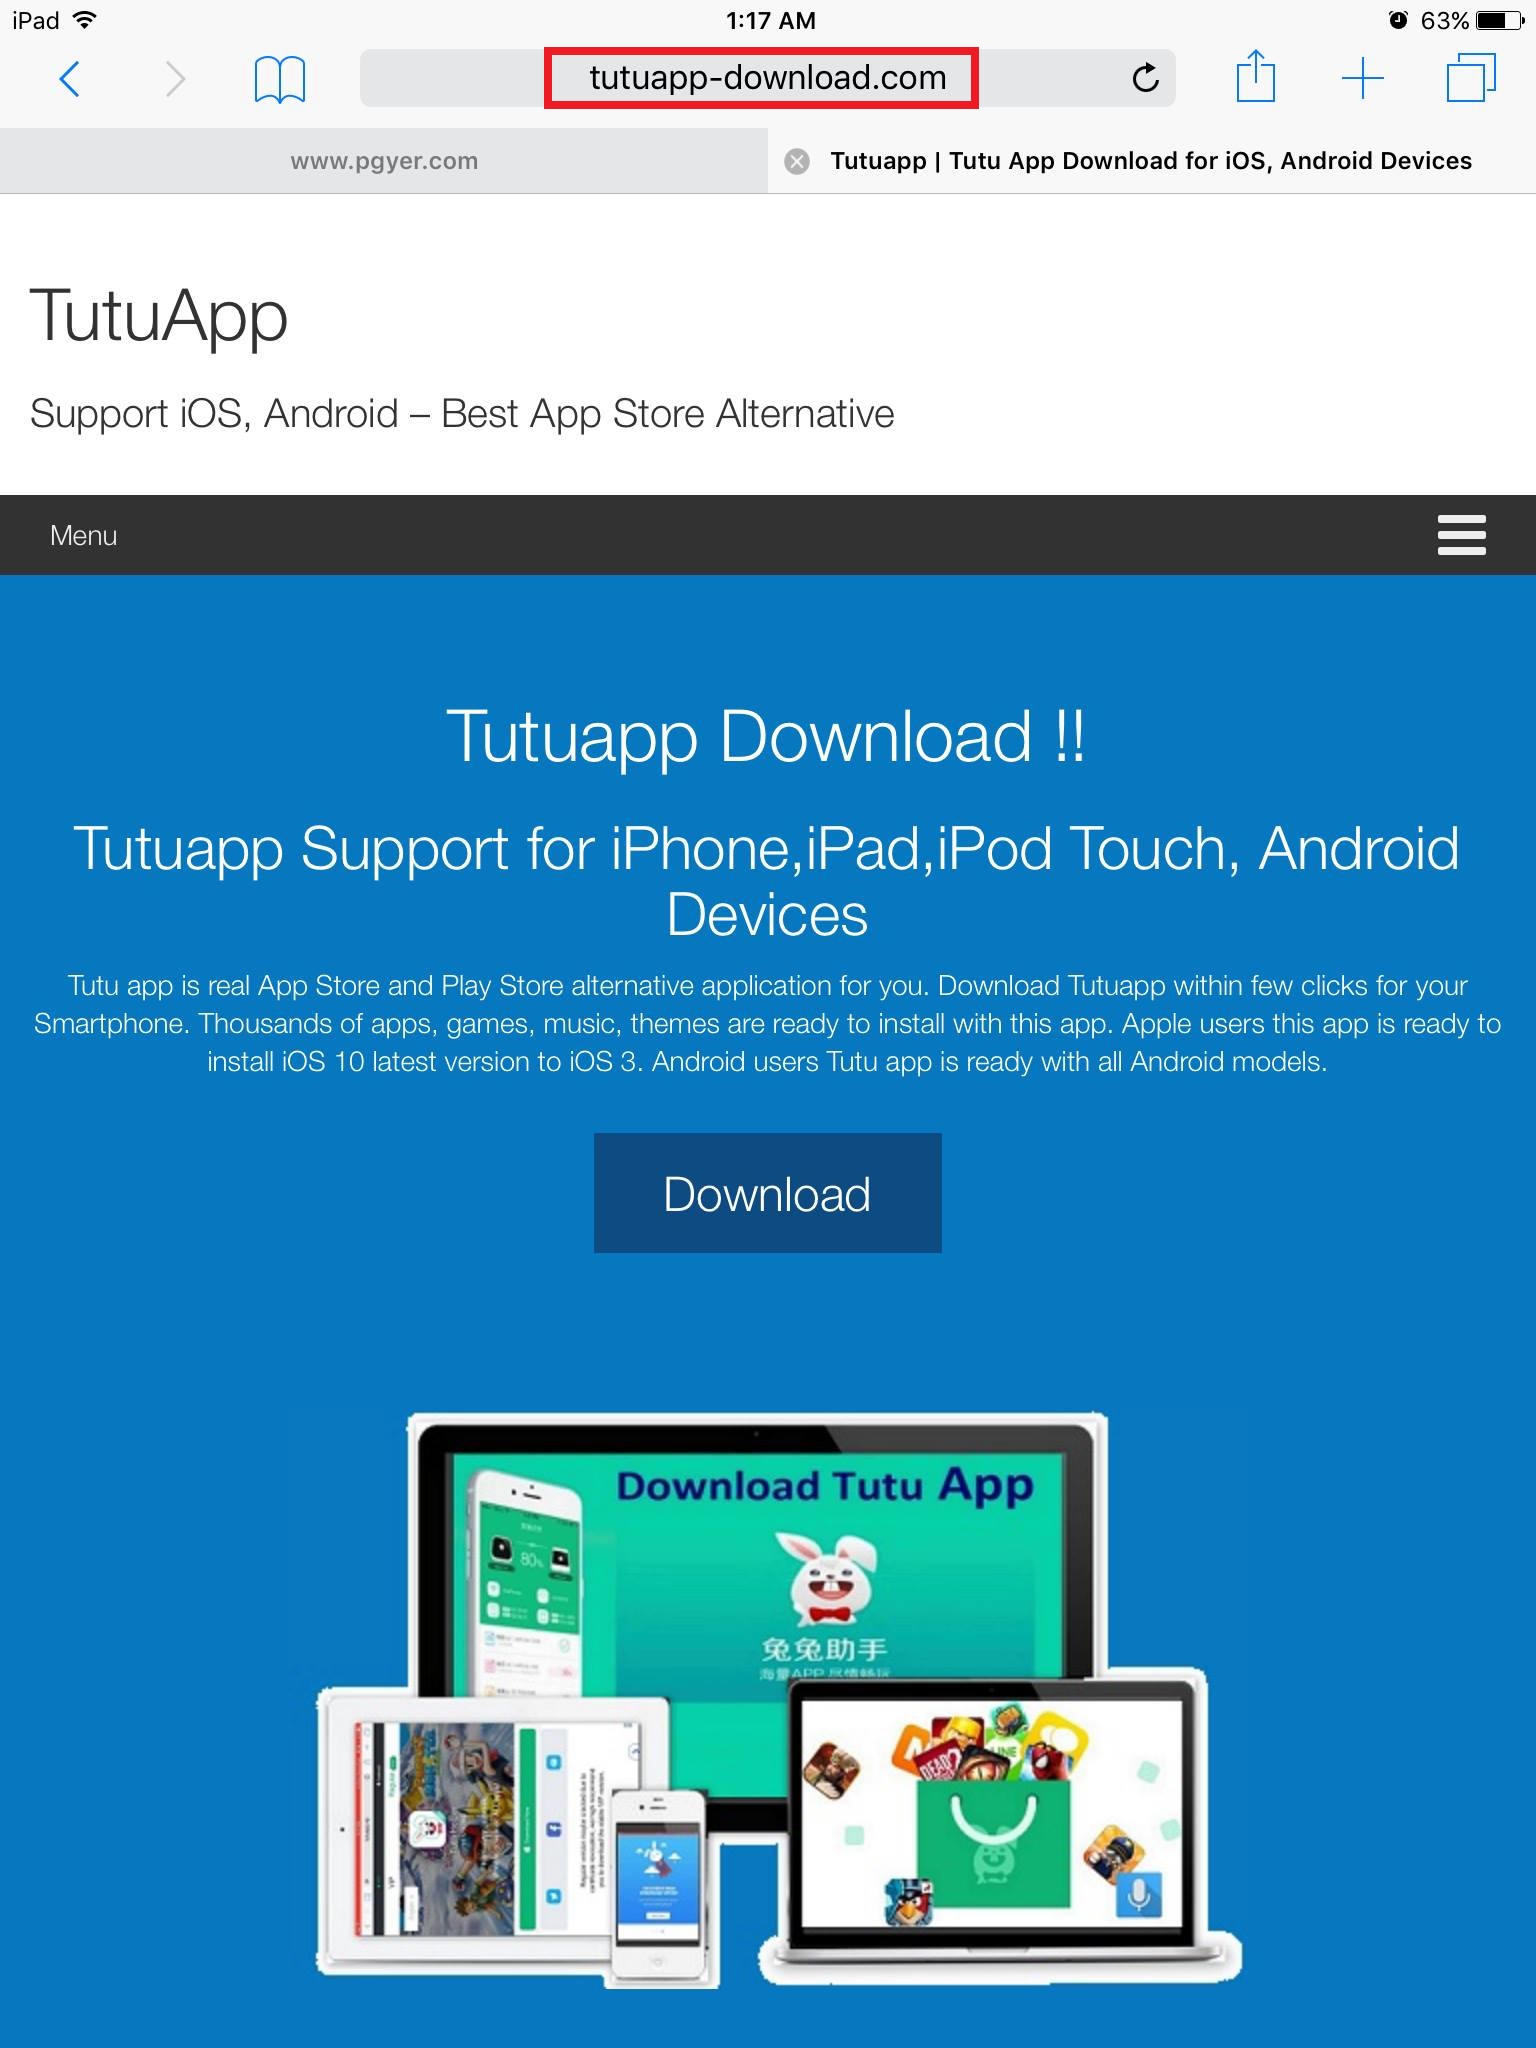 Open Safari browser on your iPhone, iPad, iPod Touch and go to tutuapp- download.com